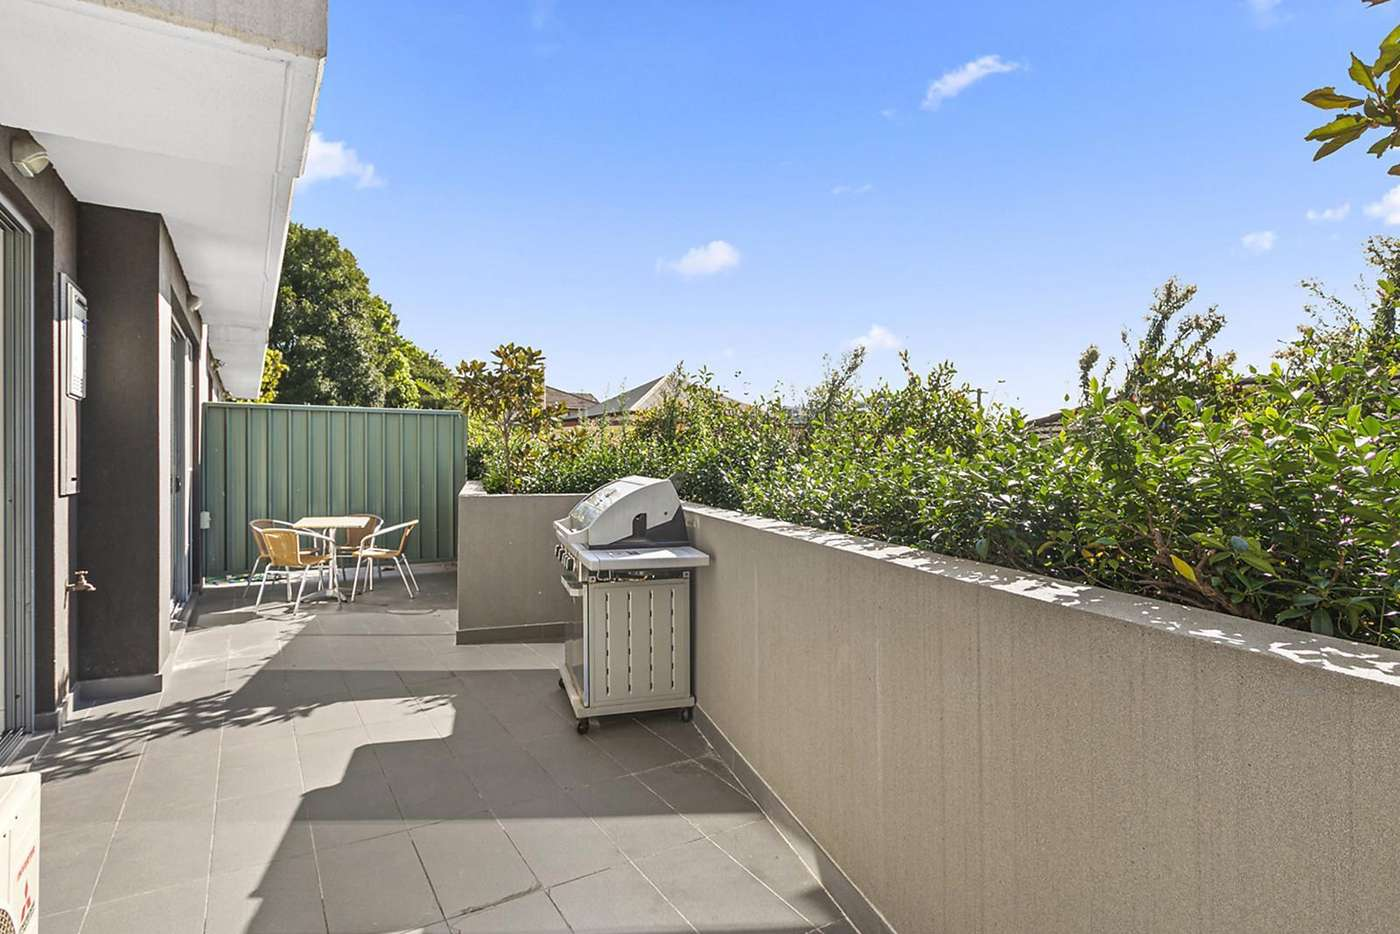 Fifth view of Homely apartment listing, 3/6-8 Hercules Street, Wollongong NSW 2500